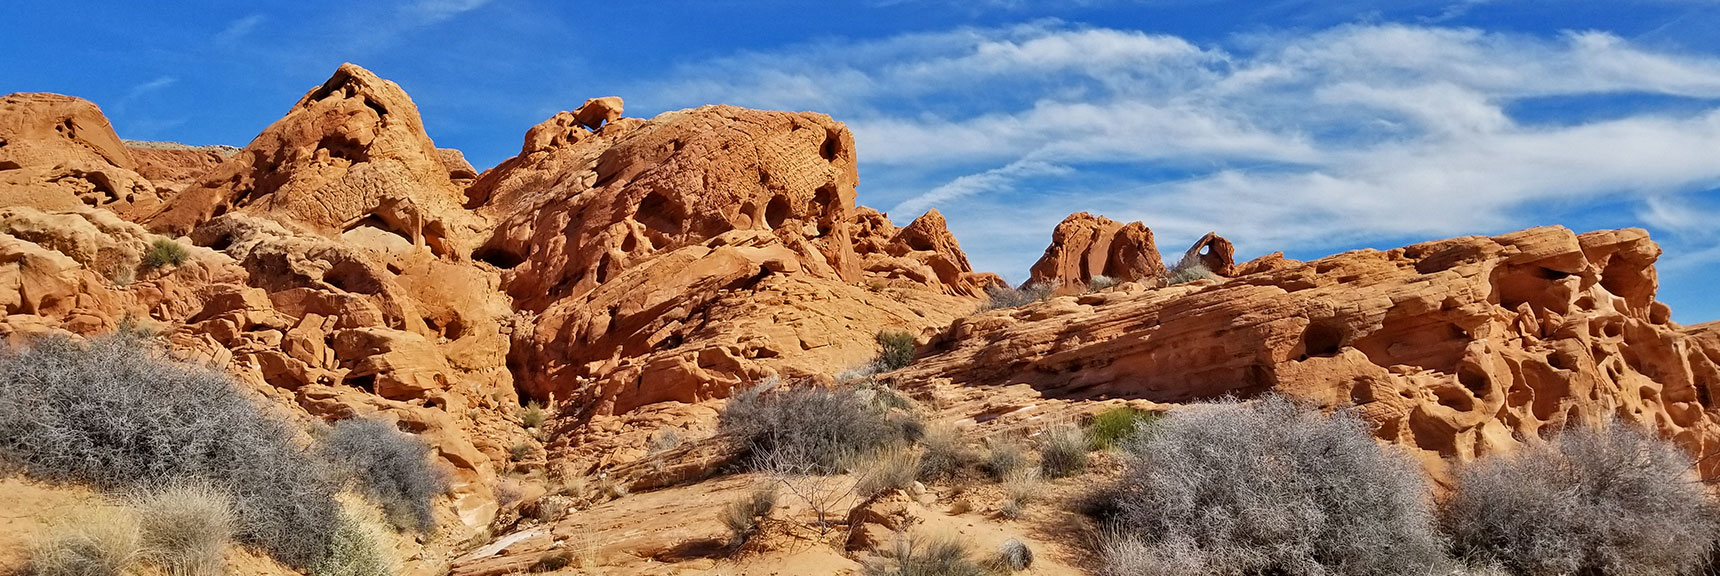 Additional Amazing Rock Formations on Natural Arches Trail, Valley of Fire State Park, Nevada